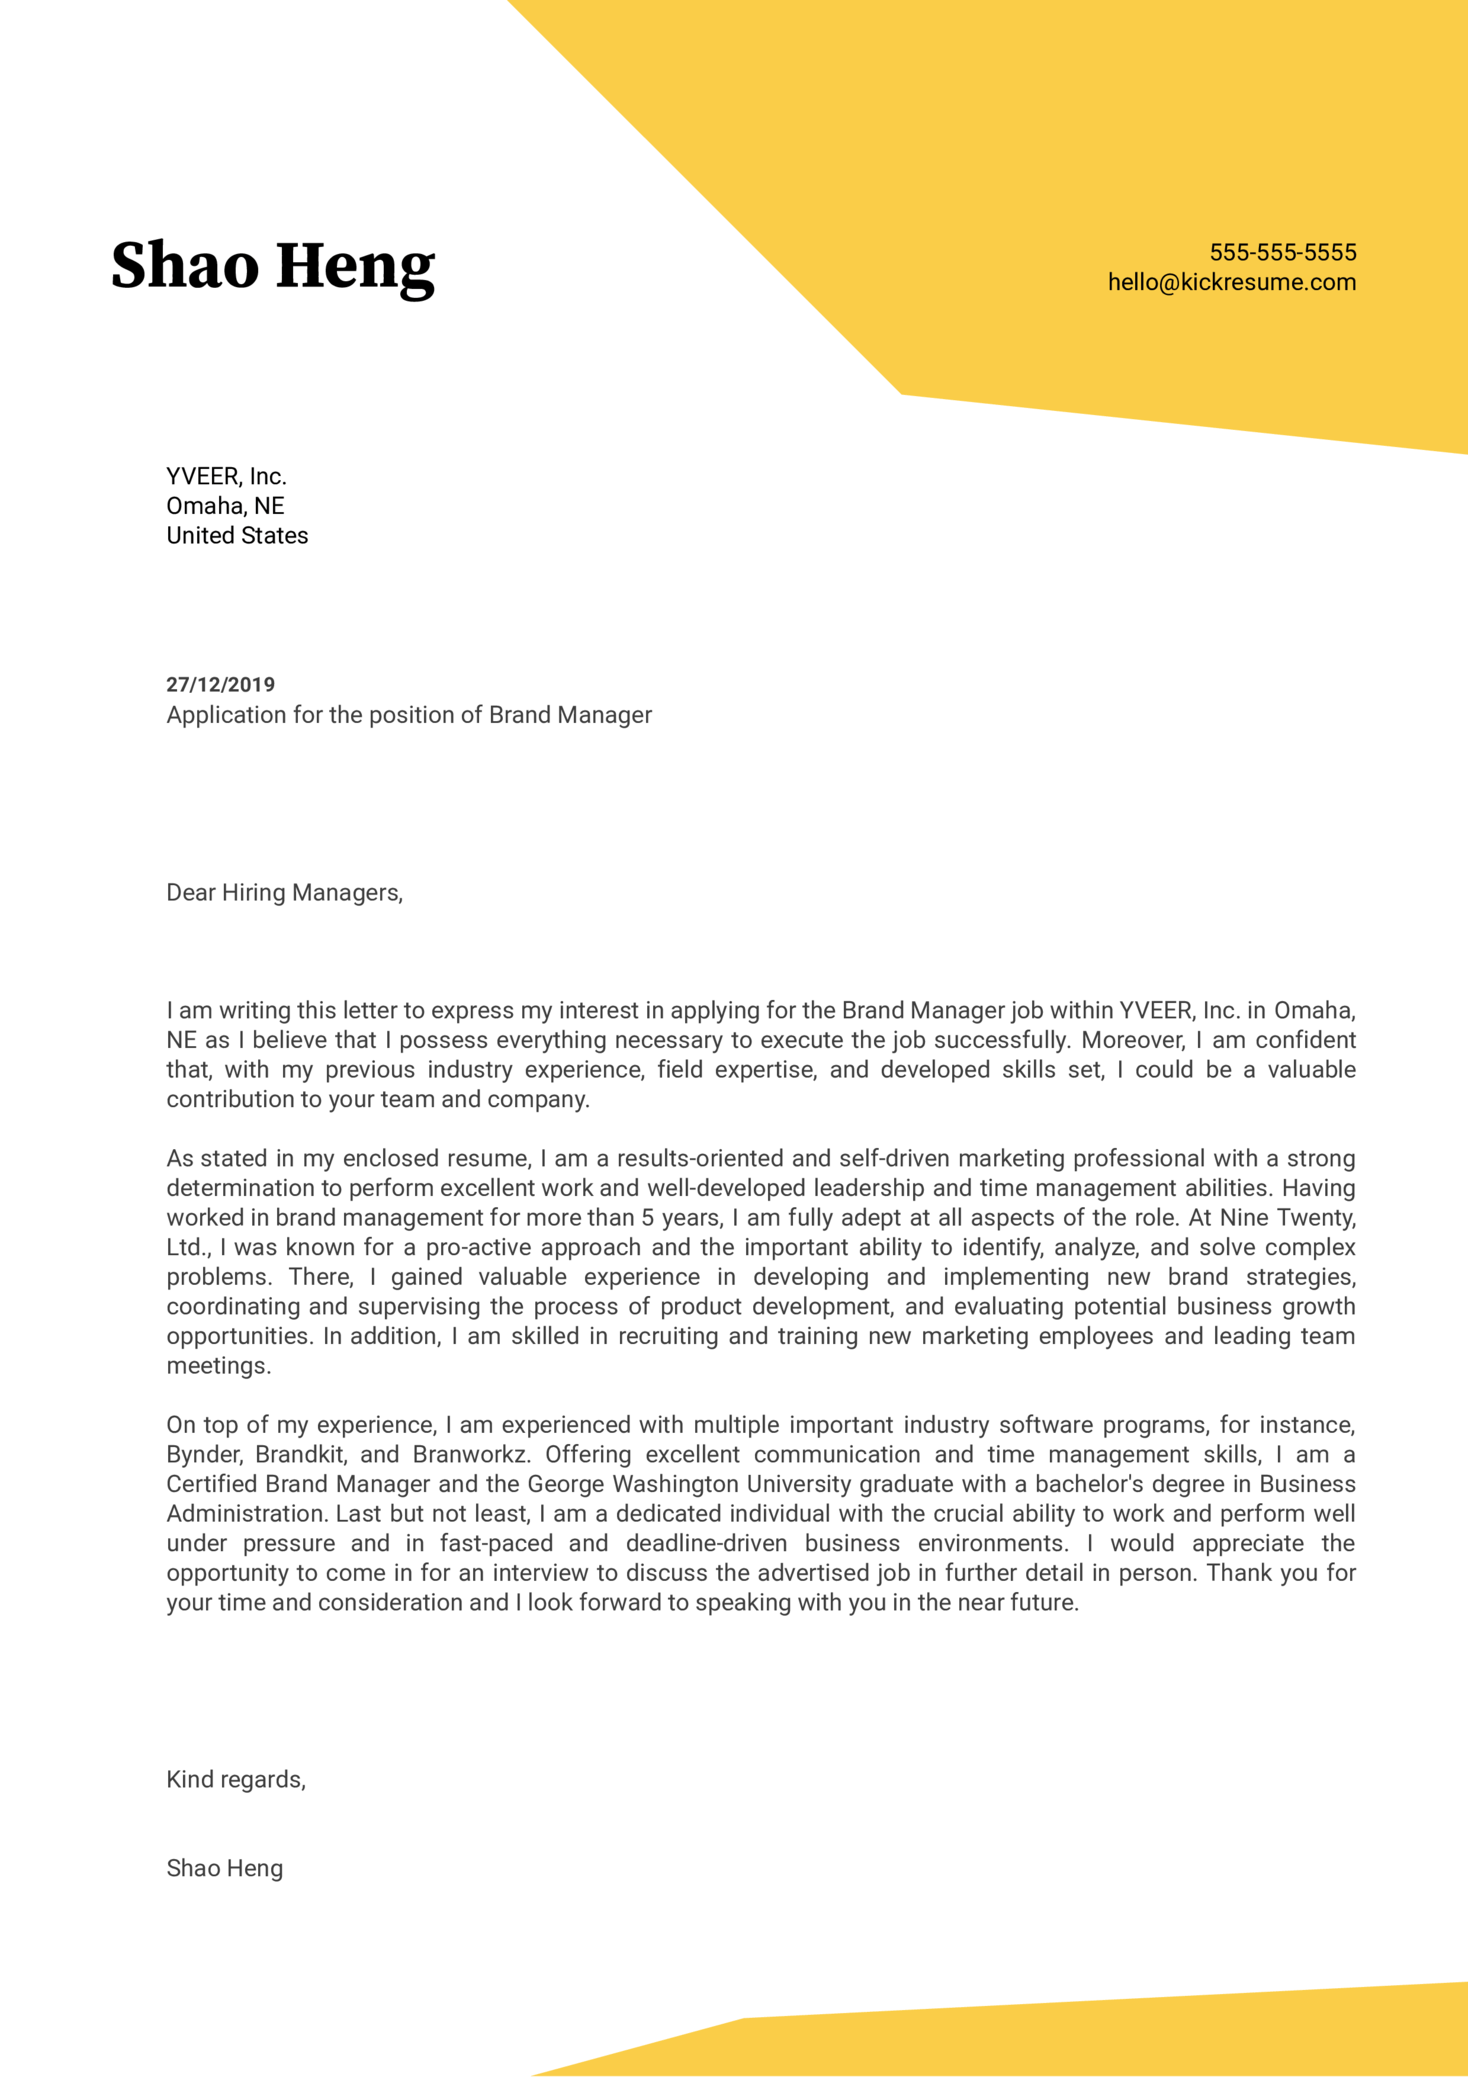 Brand Manager Cover Letter Example